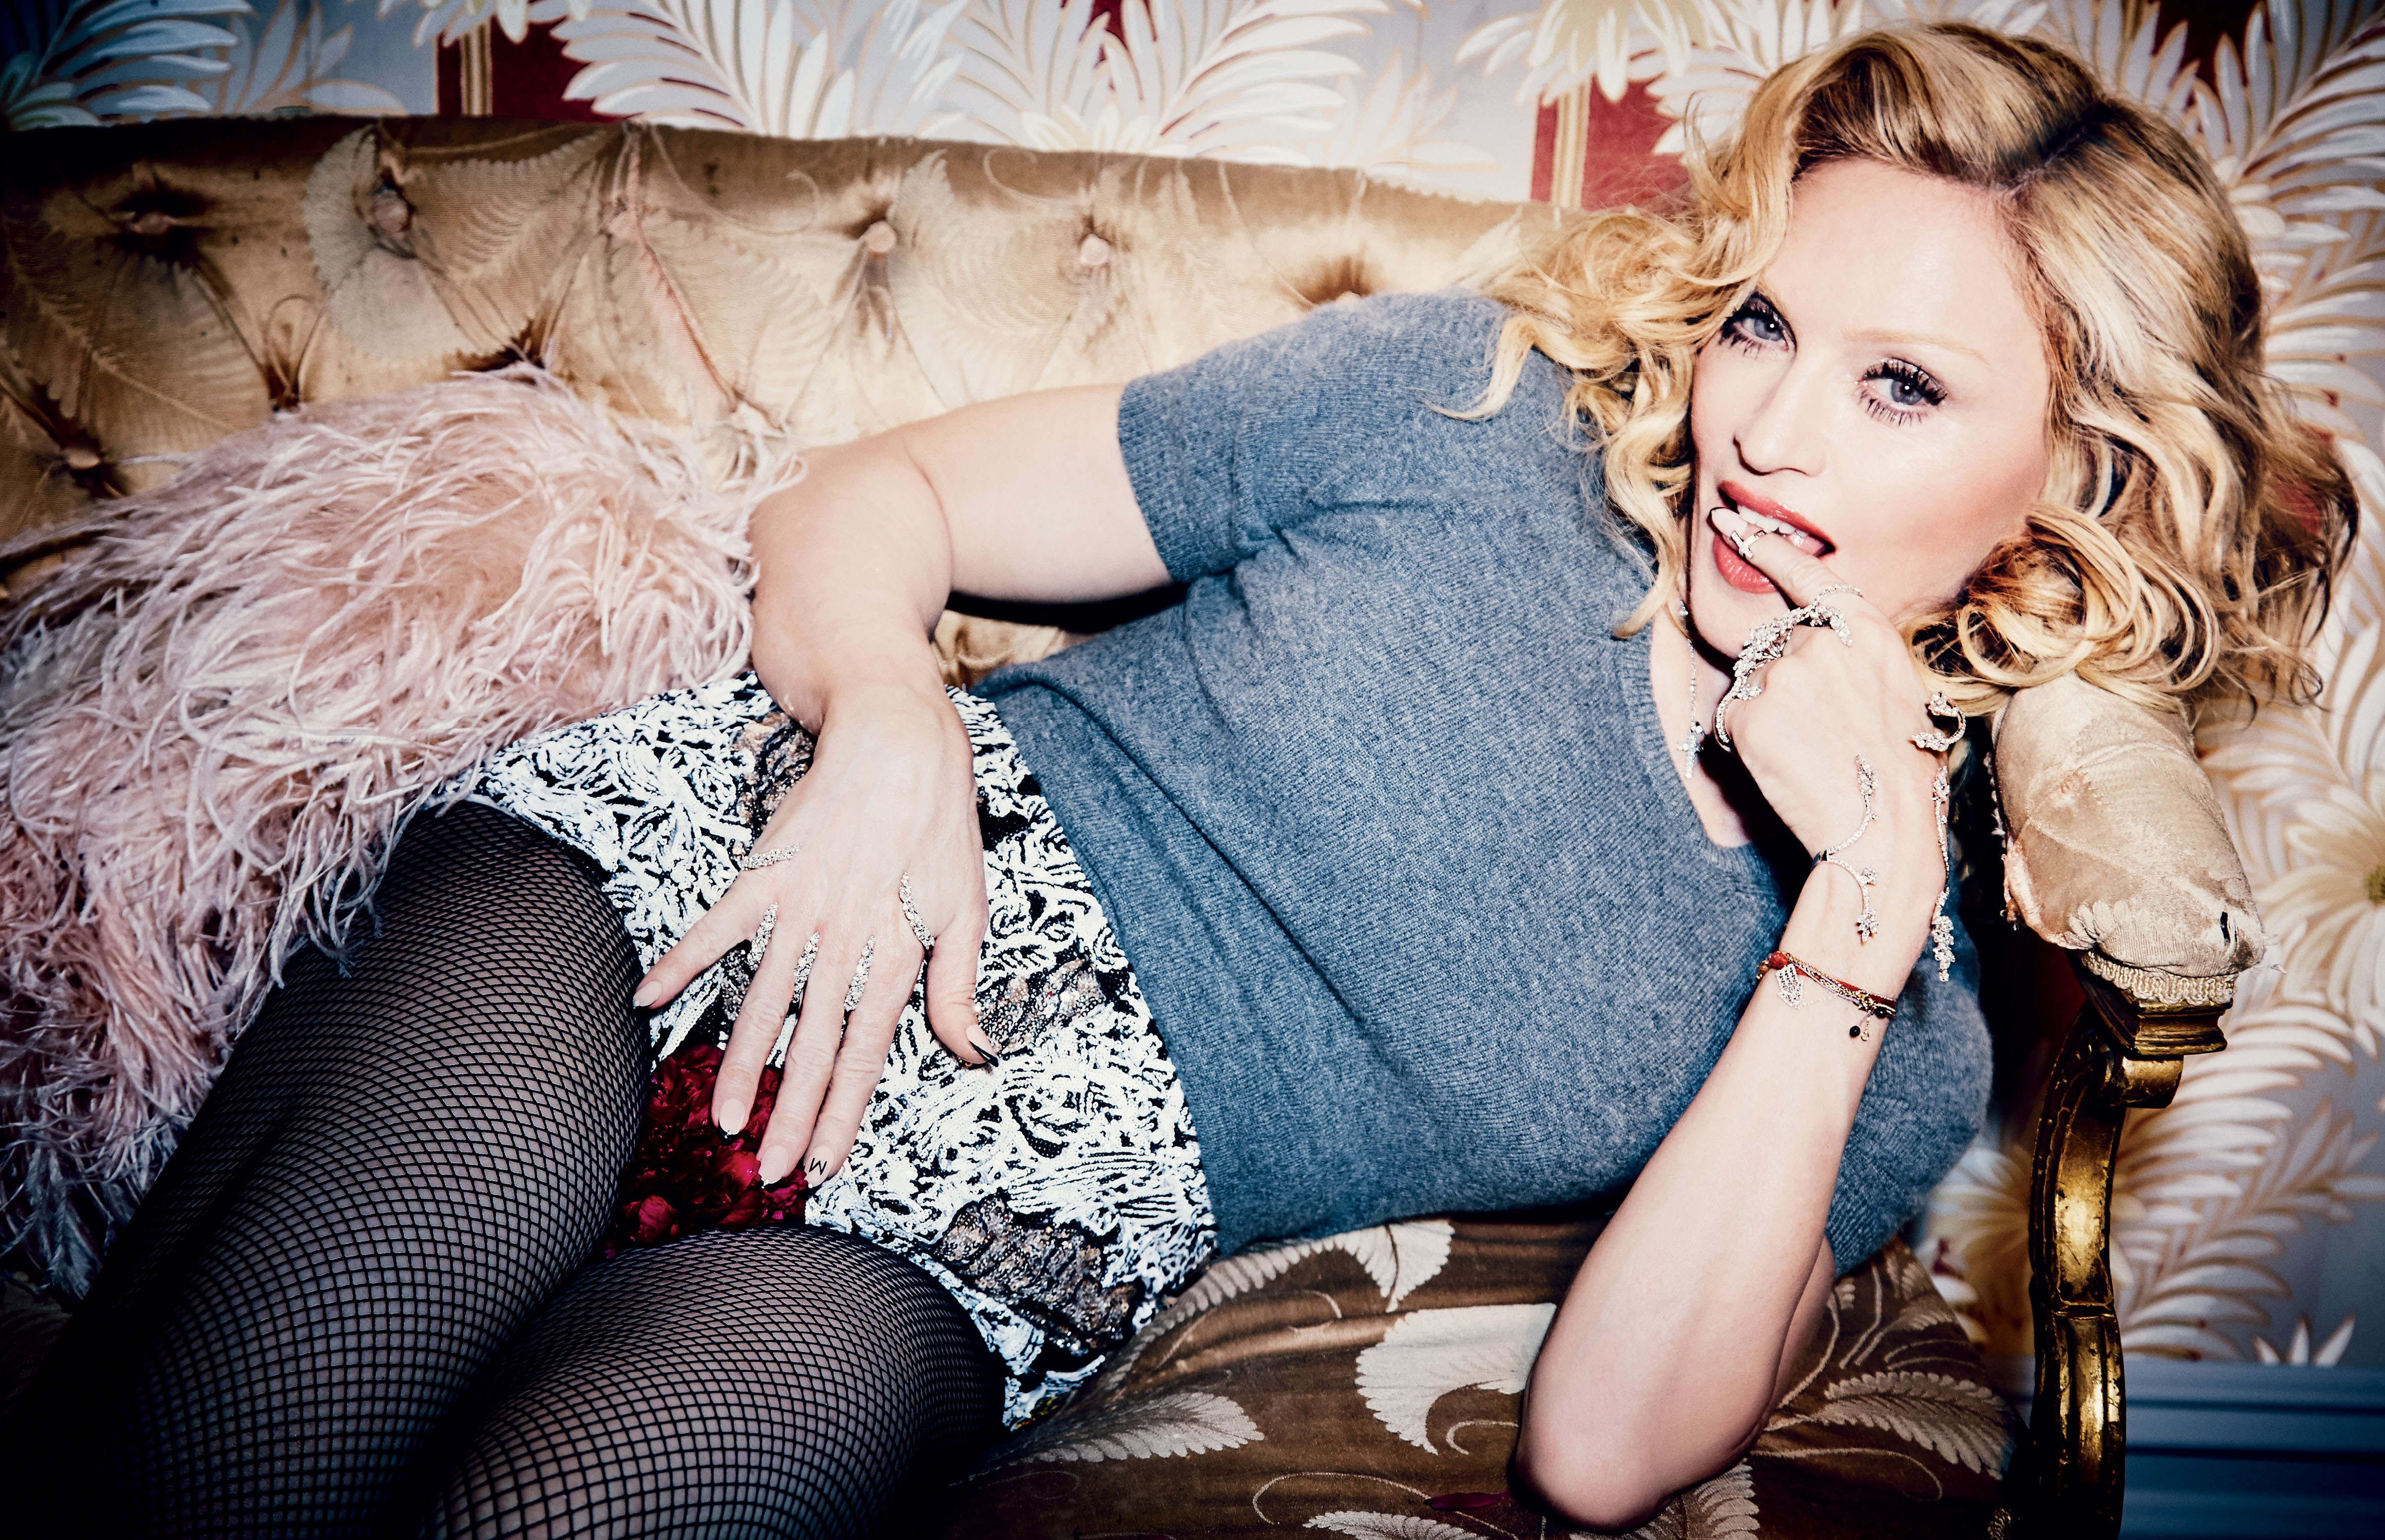 Cosmo-May-15-Madonna